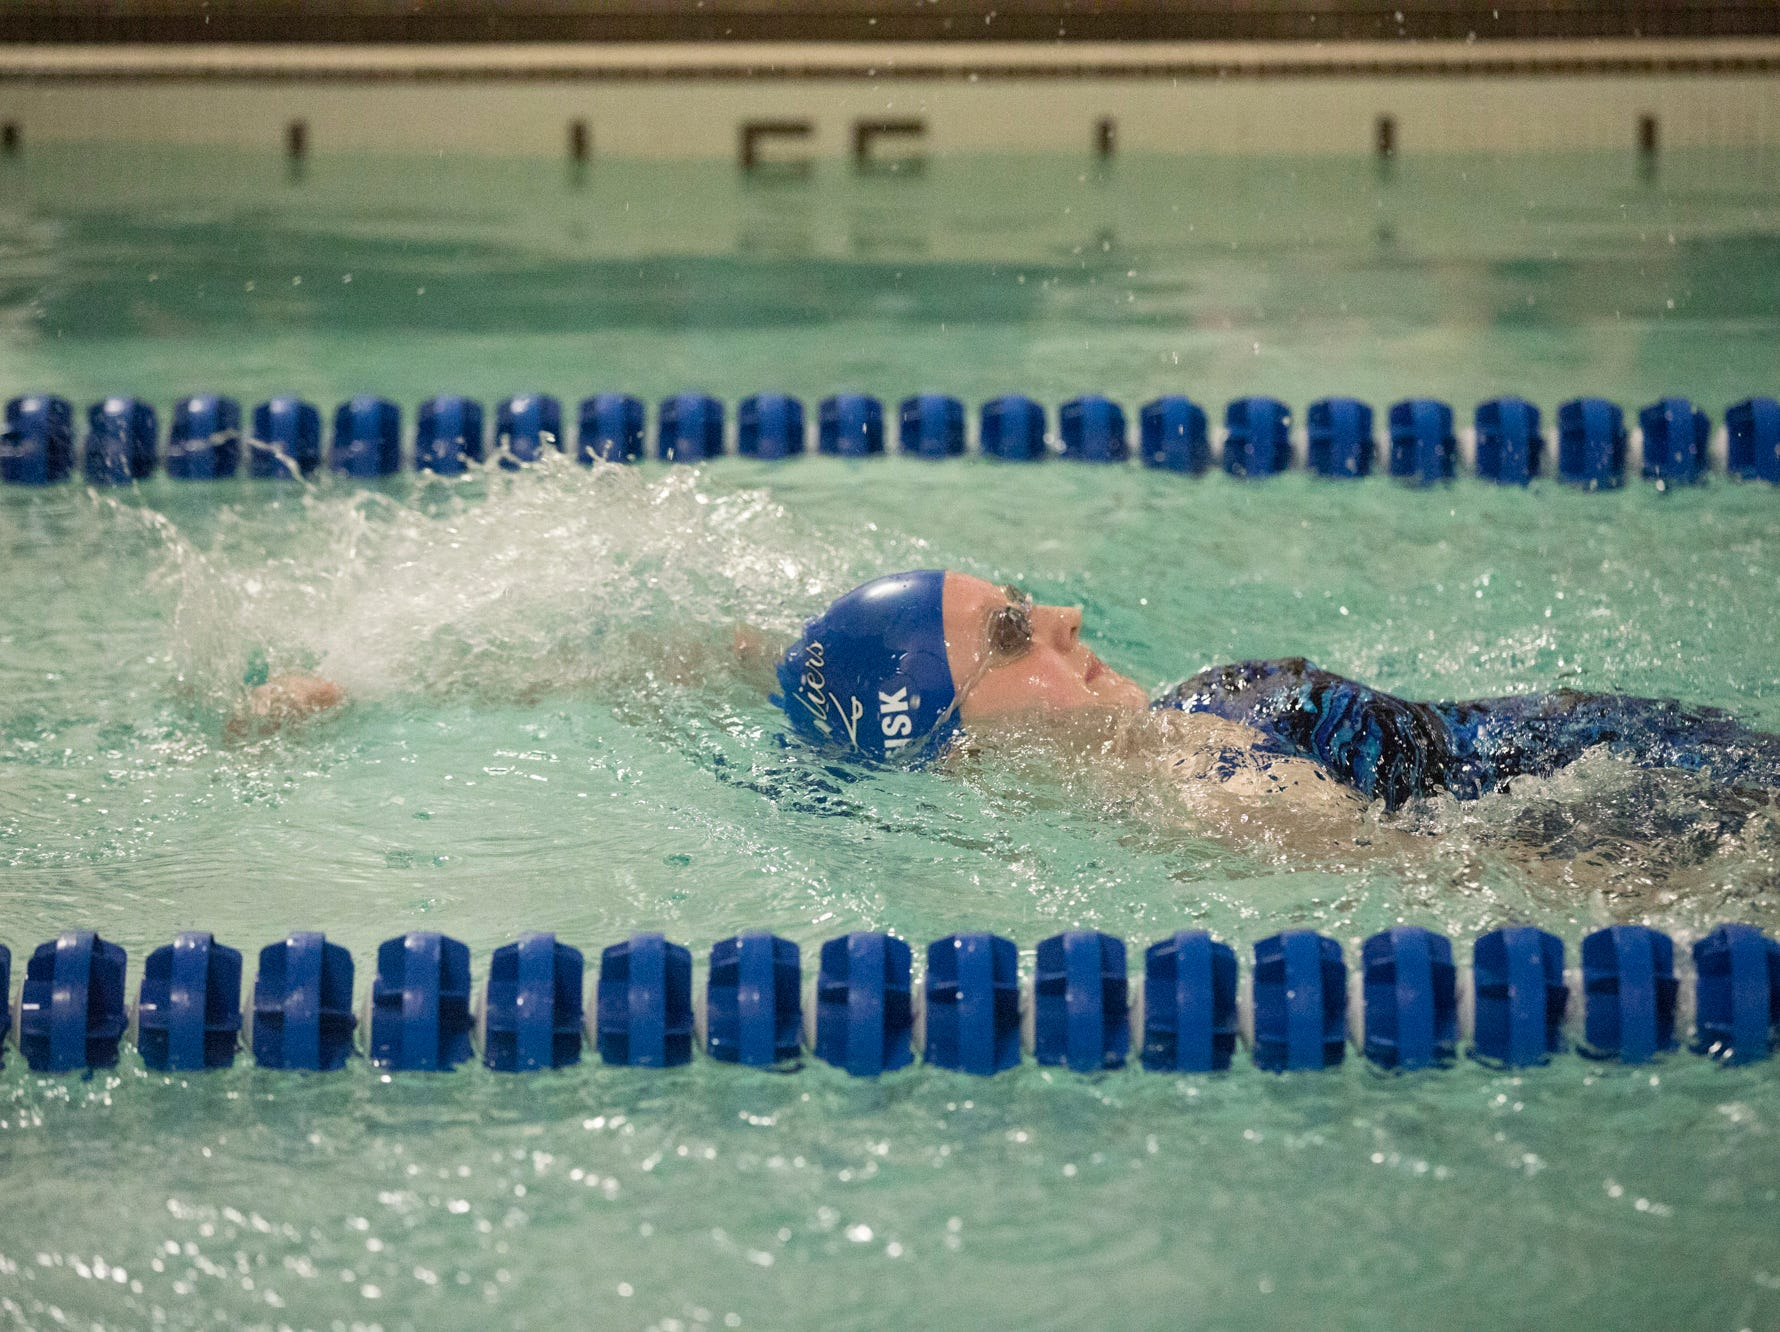 Chillicothe, Zane Trace, and Teays Valley swimmers competed at the Ross County YMCA on Tuesday, Jan. 22, 2019, in Chillicothe, Ohio.